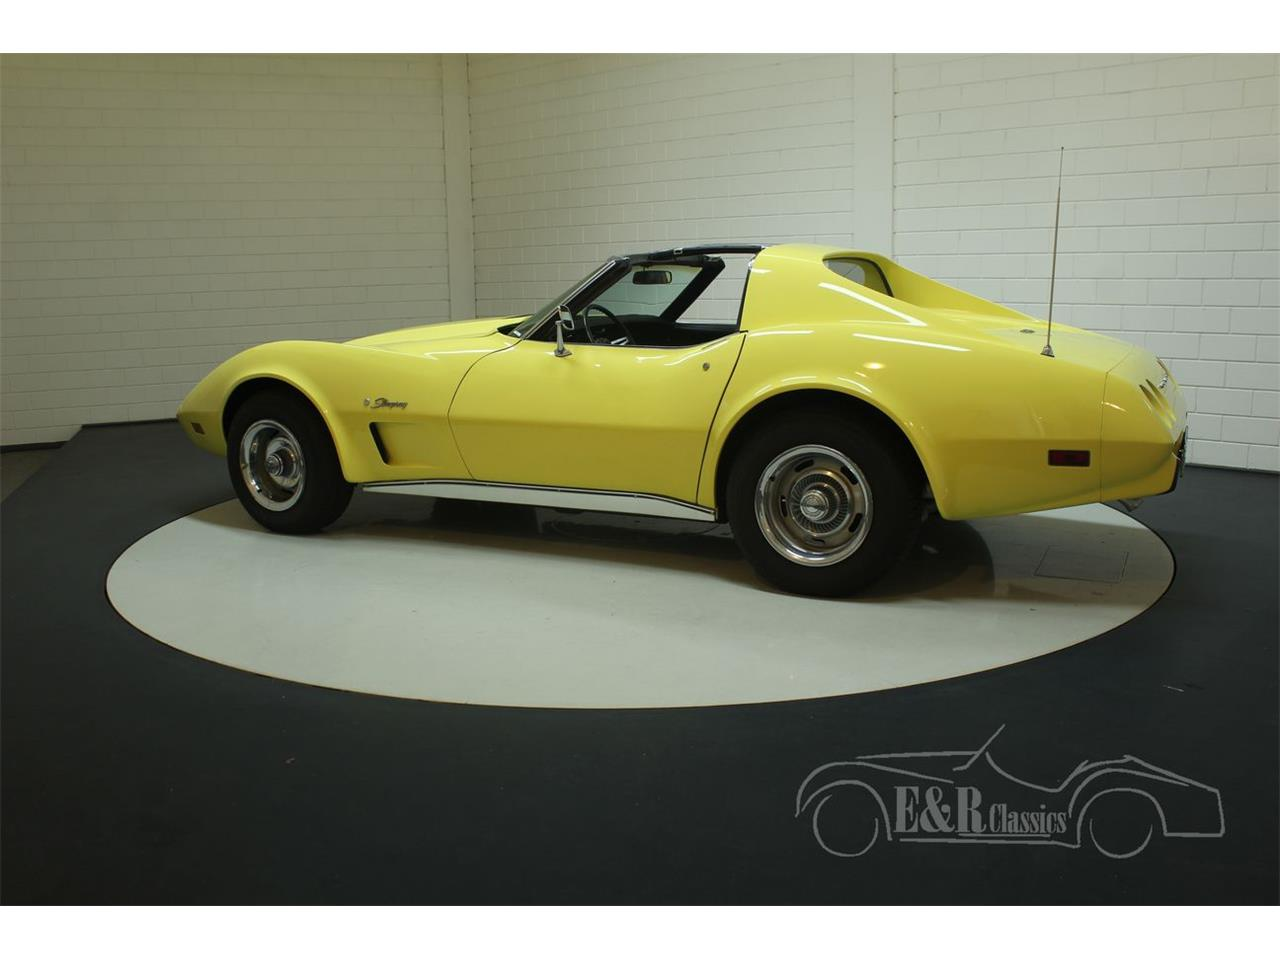 Large Picture of '74 Corvette located in Waalwijk noord brabant - $34,292.00 Offered by E & R Classics - PFBT